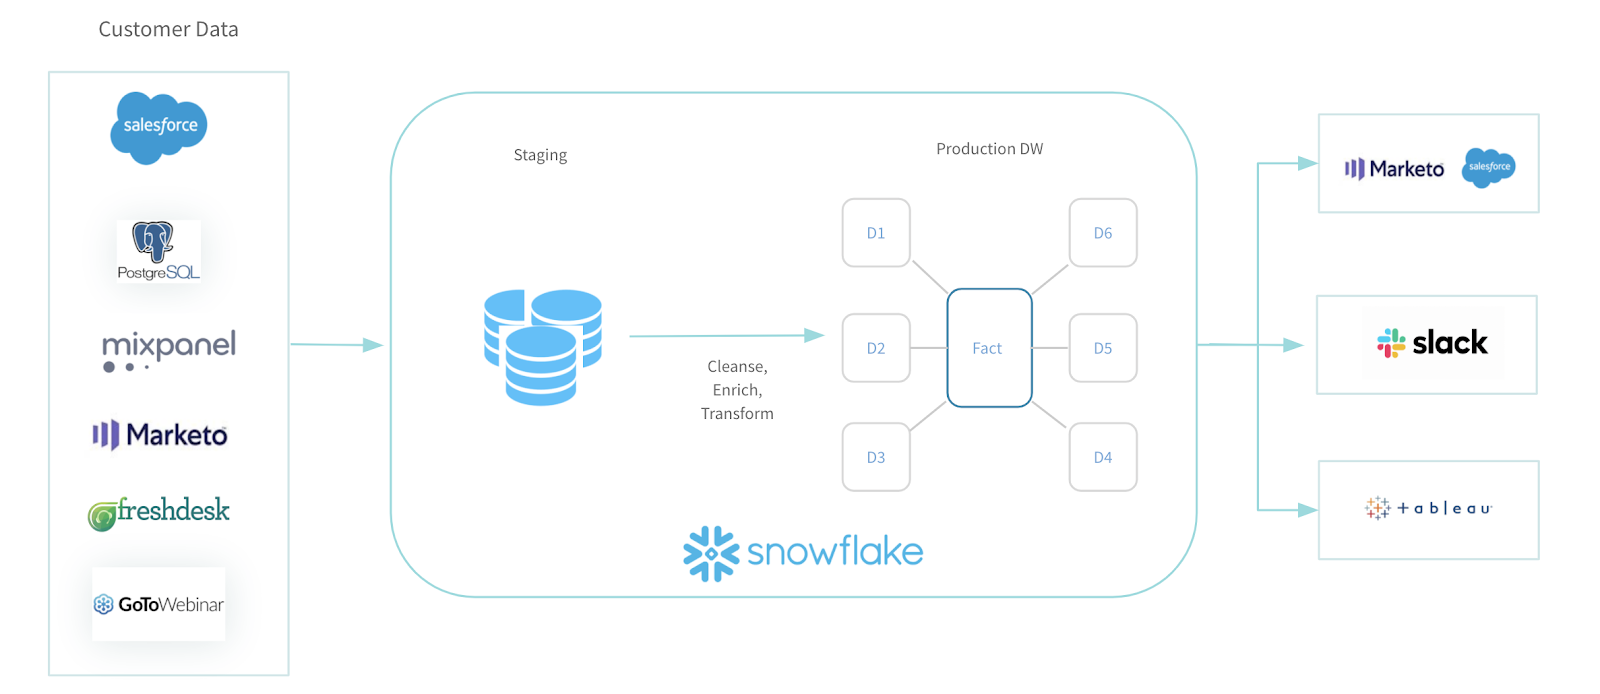 How to share product usage insights with Snowflake.